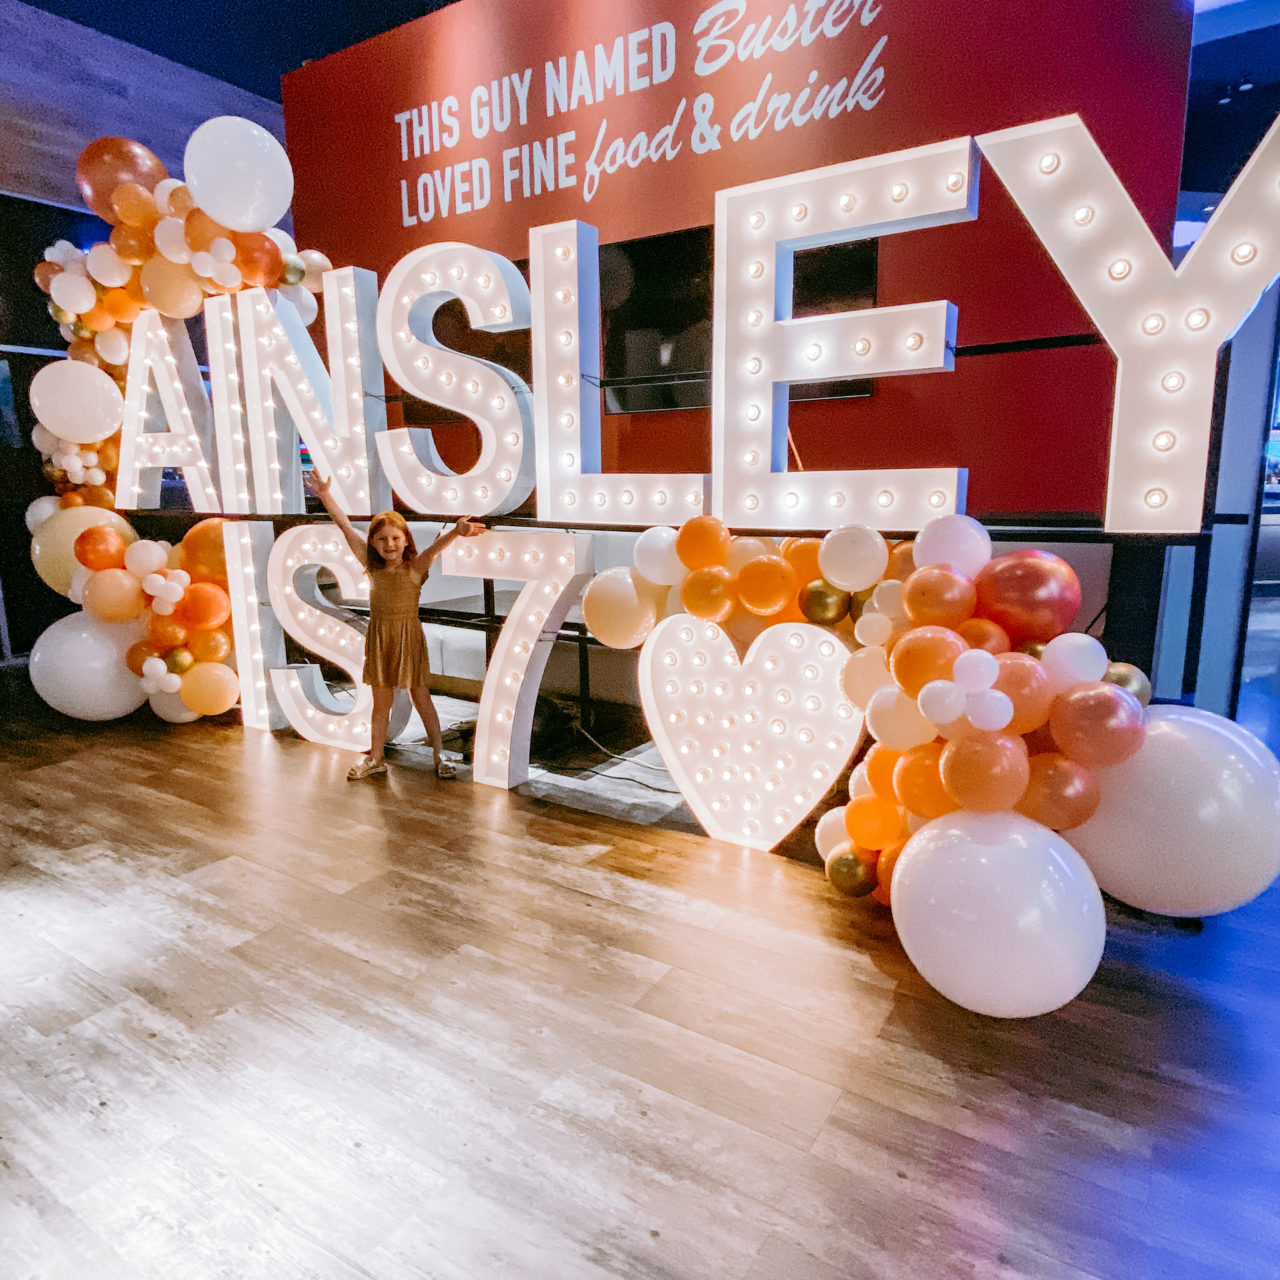 Ainsley's boho rainbow party at Dave & Buster's!